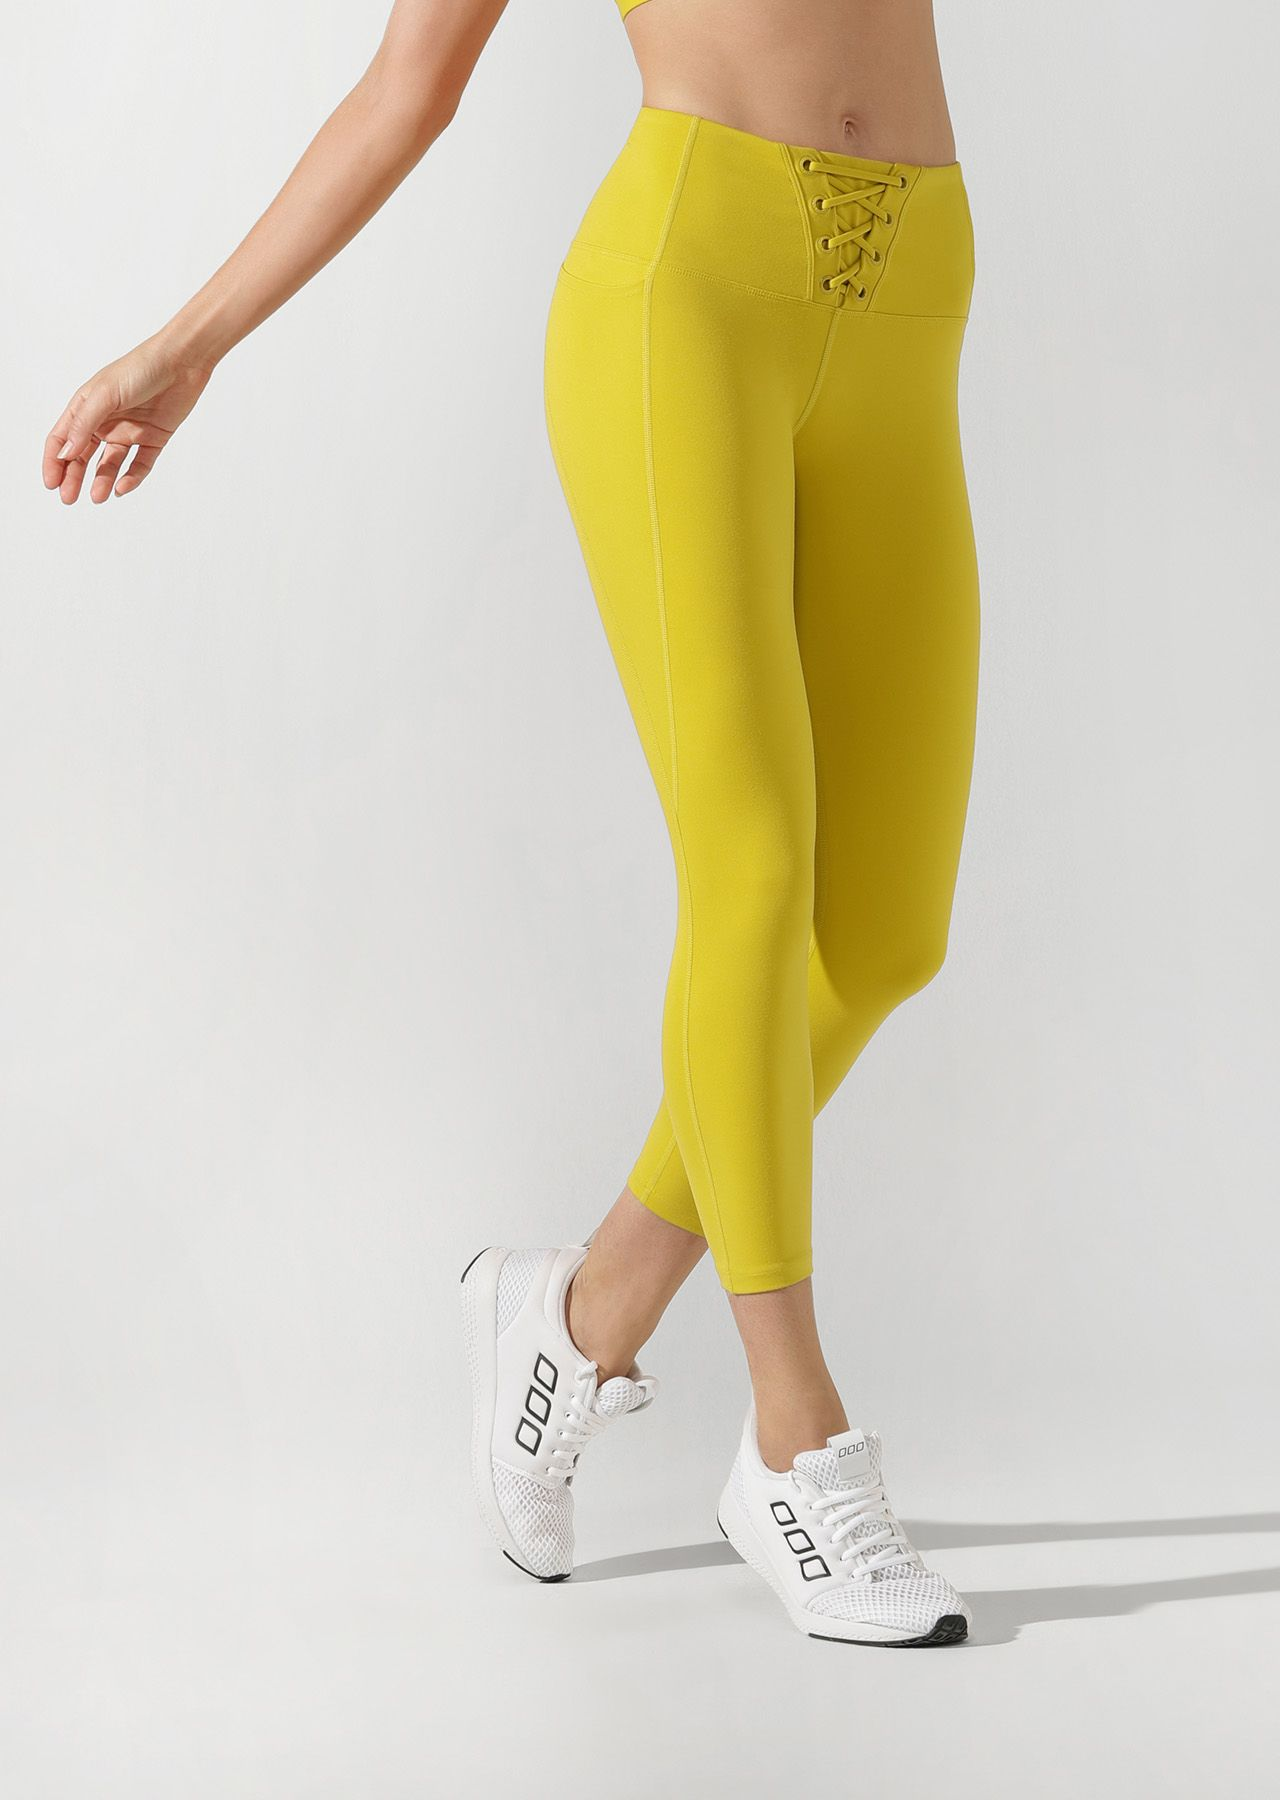 Lace Up Ankle Biter Tight Active wear for women, Tights